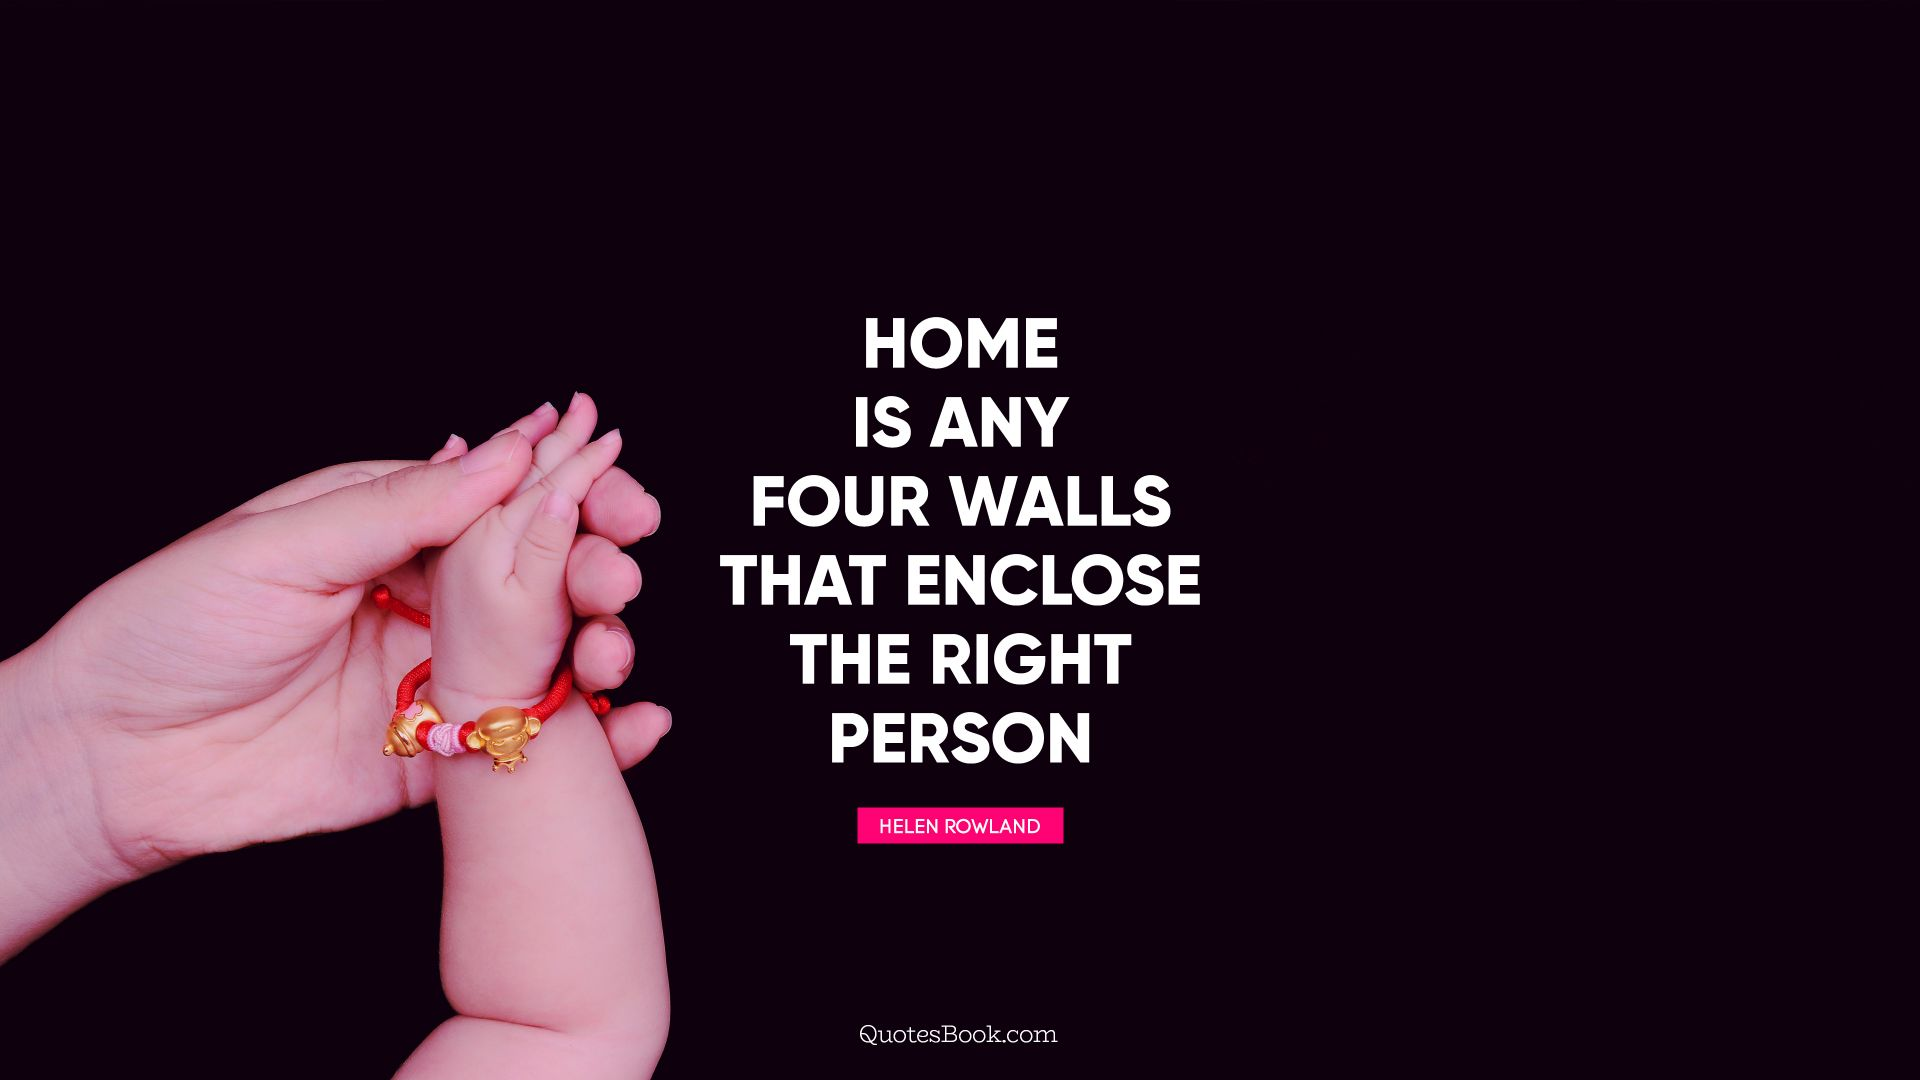 Home is any four walls that enclose the right person. - Quote by Helen Rowland